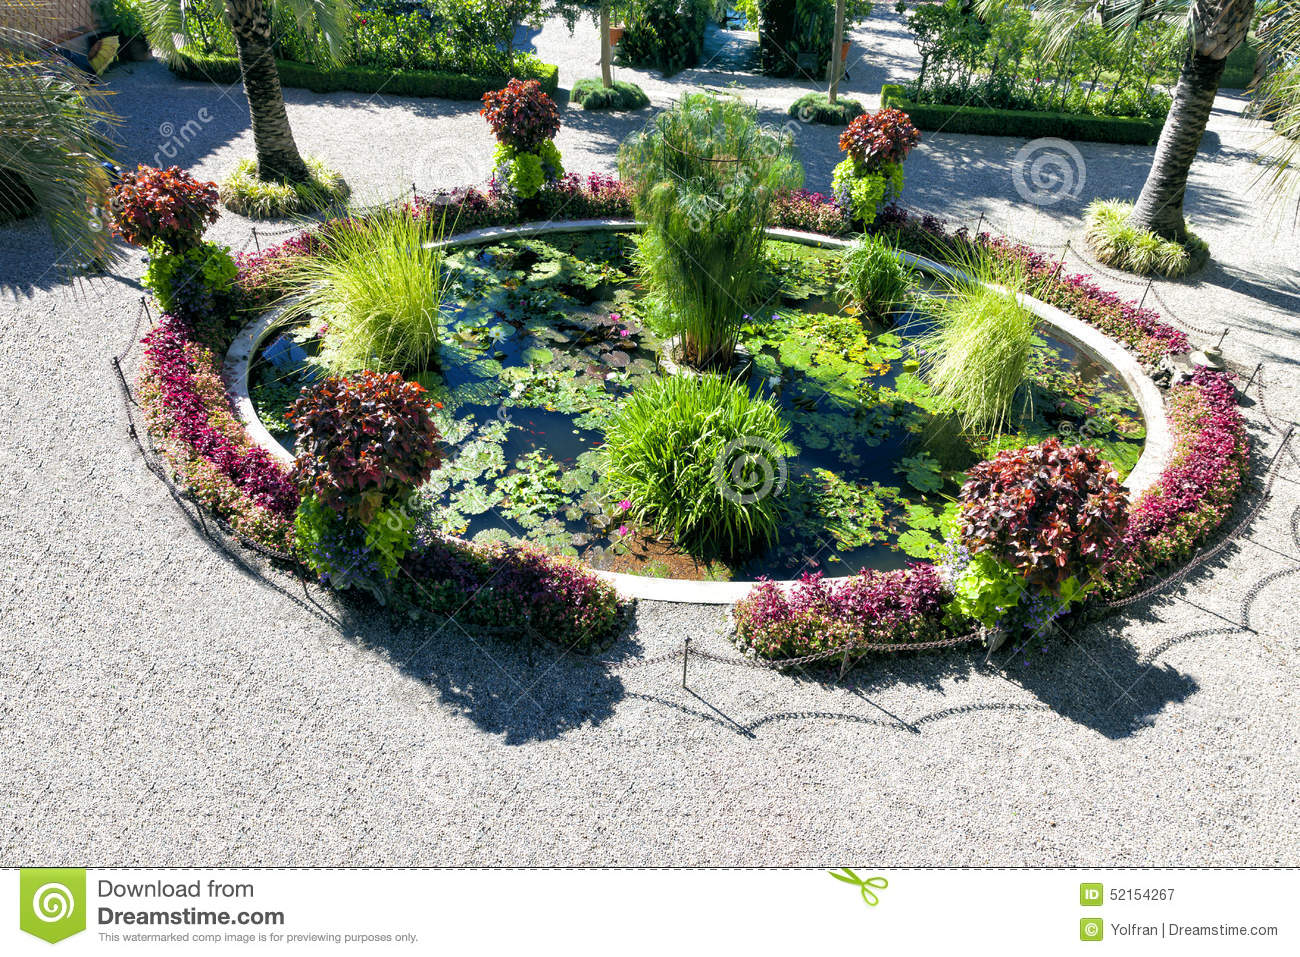 Ornamental garden pond with water plants and flowers stock for Ornamental garden plants